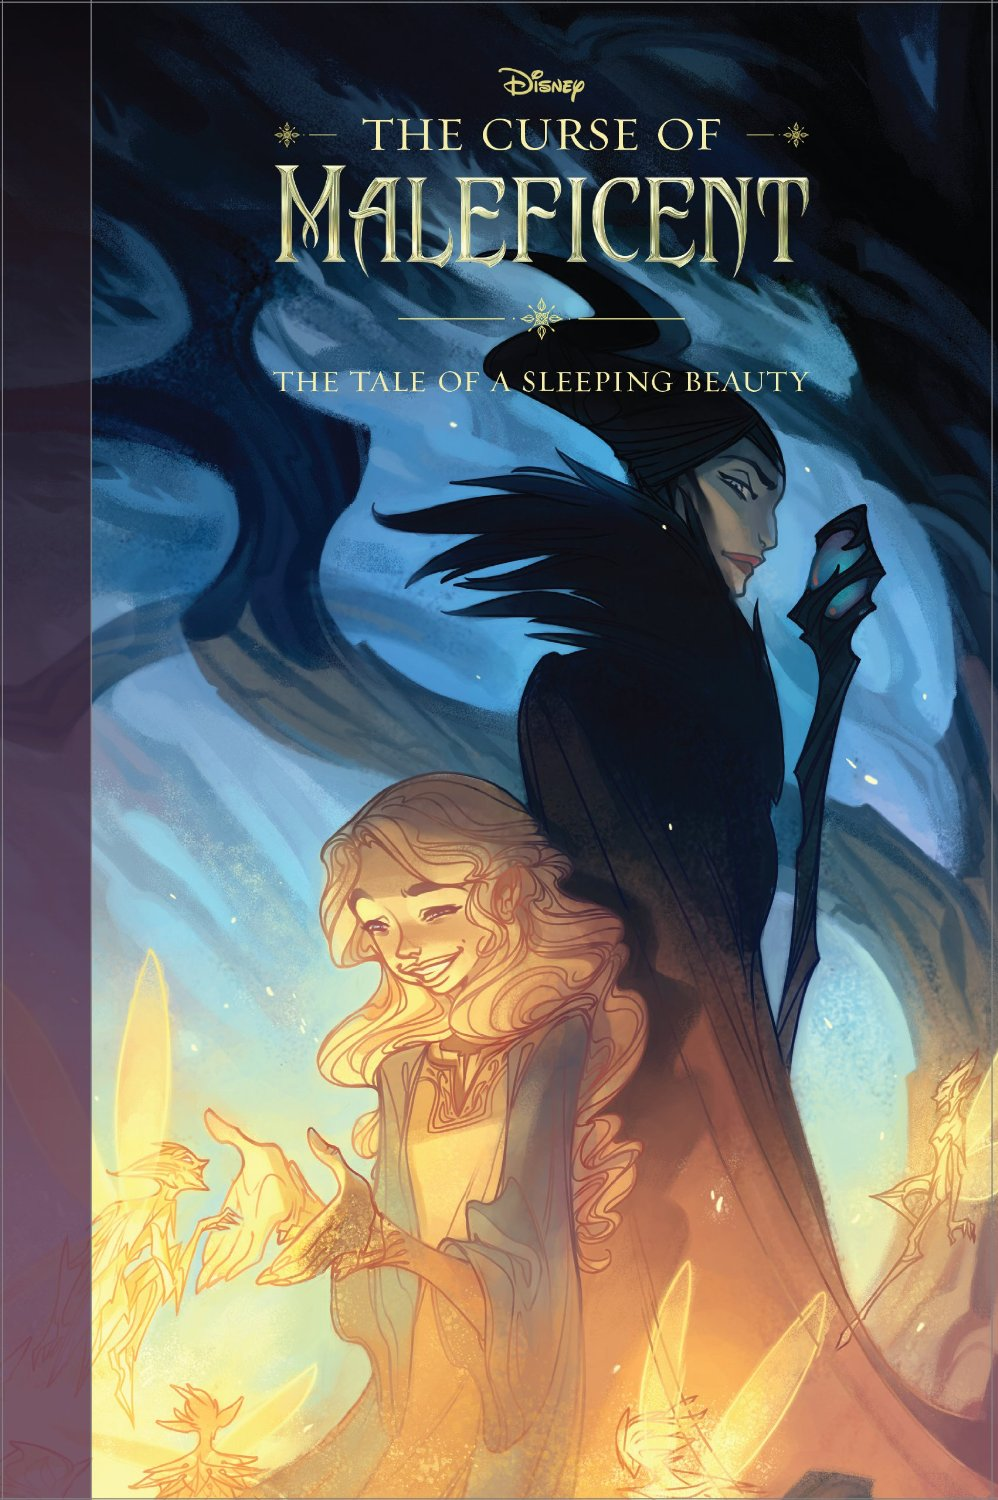 The Curse Of Maleficent The Tale Of A Sleeping Beauty